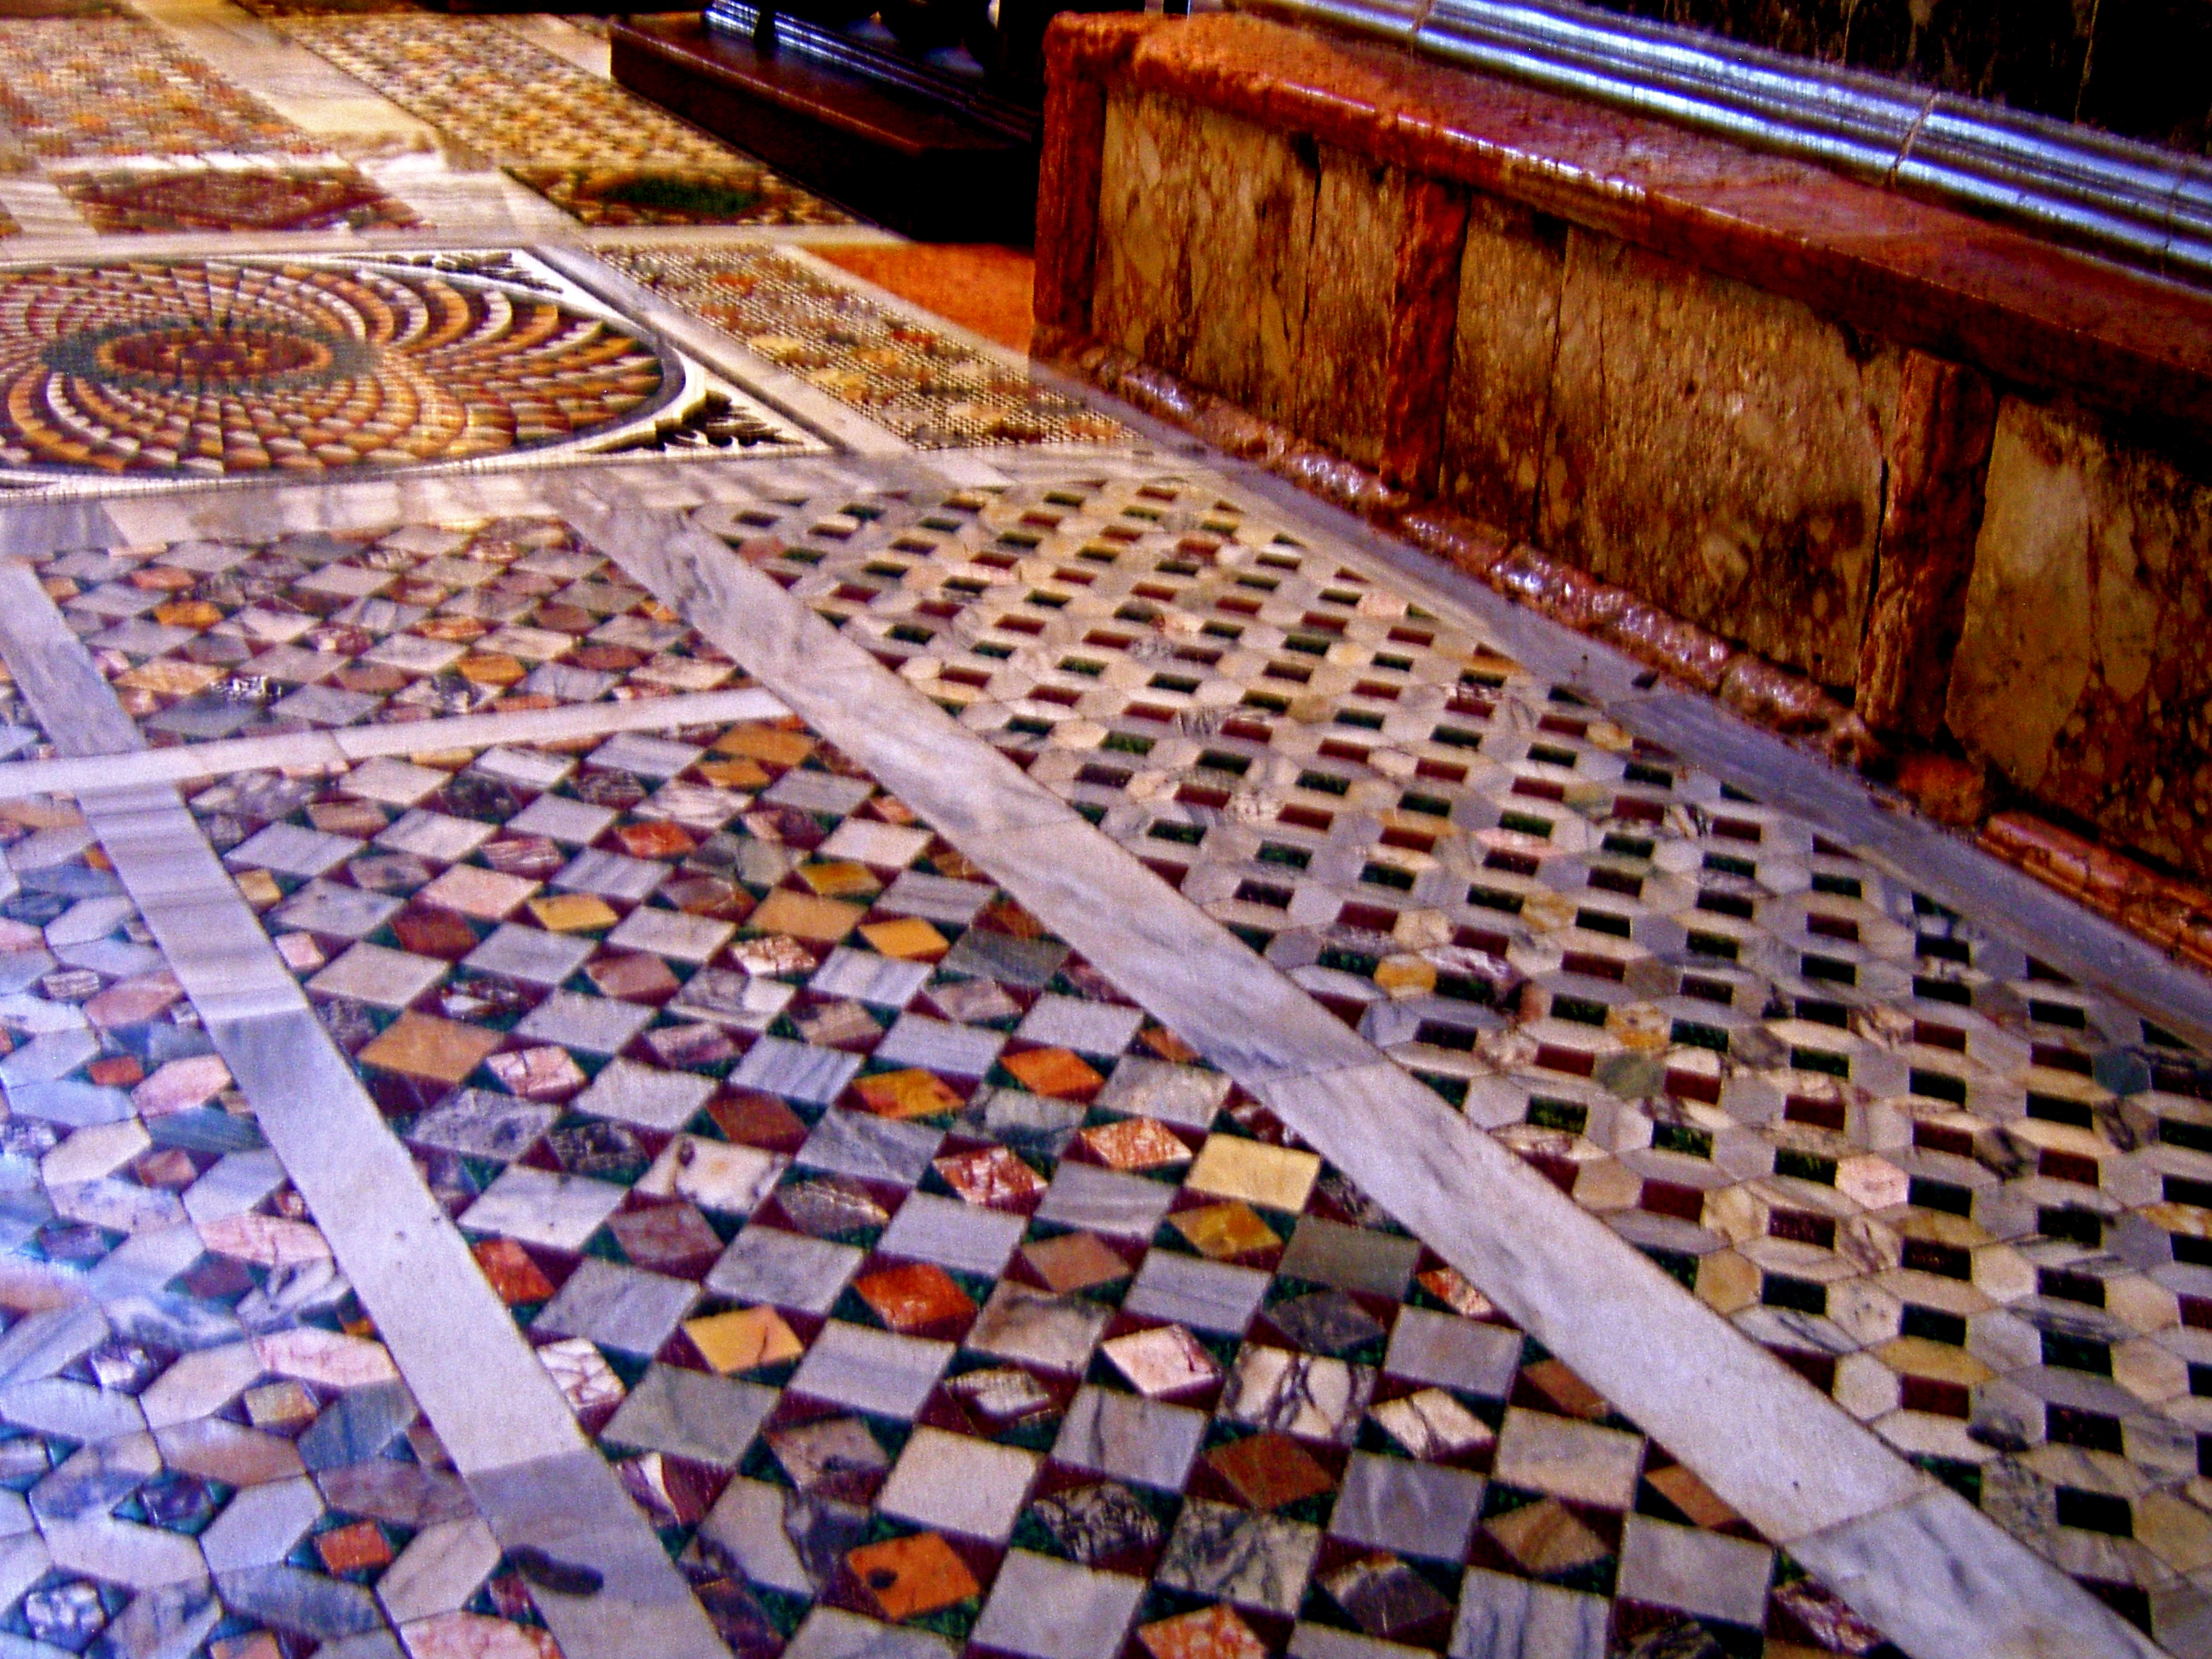 Architecture past present and future chapter 5 the tessellated floor designs alone are worthy of considerable admiration the method of design is known as opus sectile which translates into stone dailygadgetfo Images